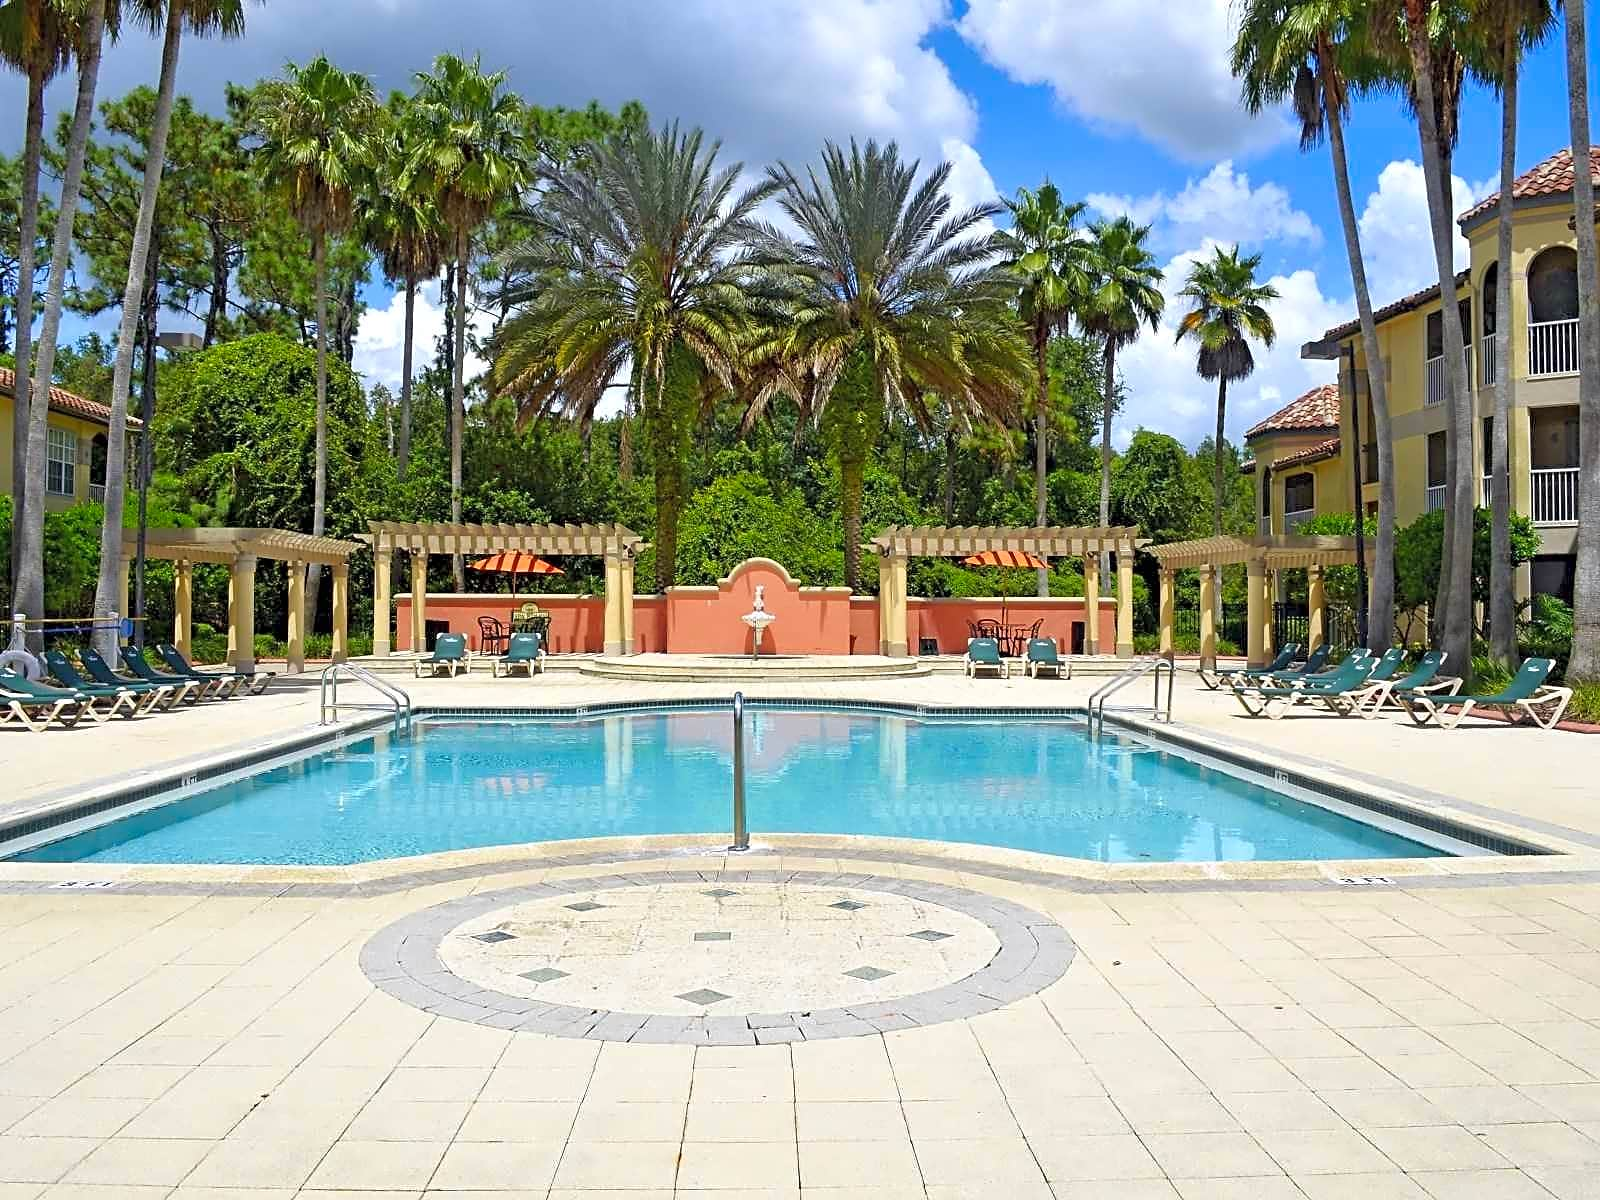 Photo: Tampa Apartment for Rent - $1160.00 / month; 3 Bd & 2 Ba